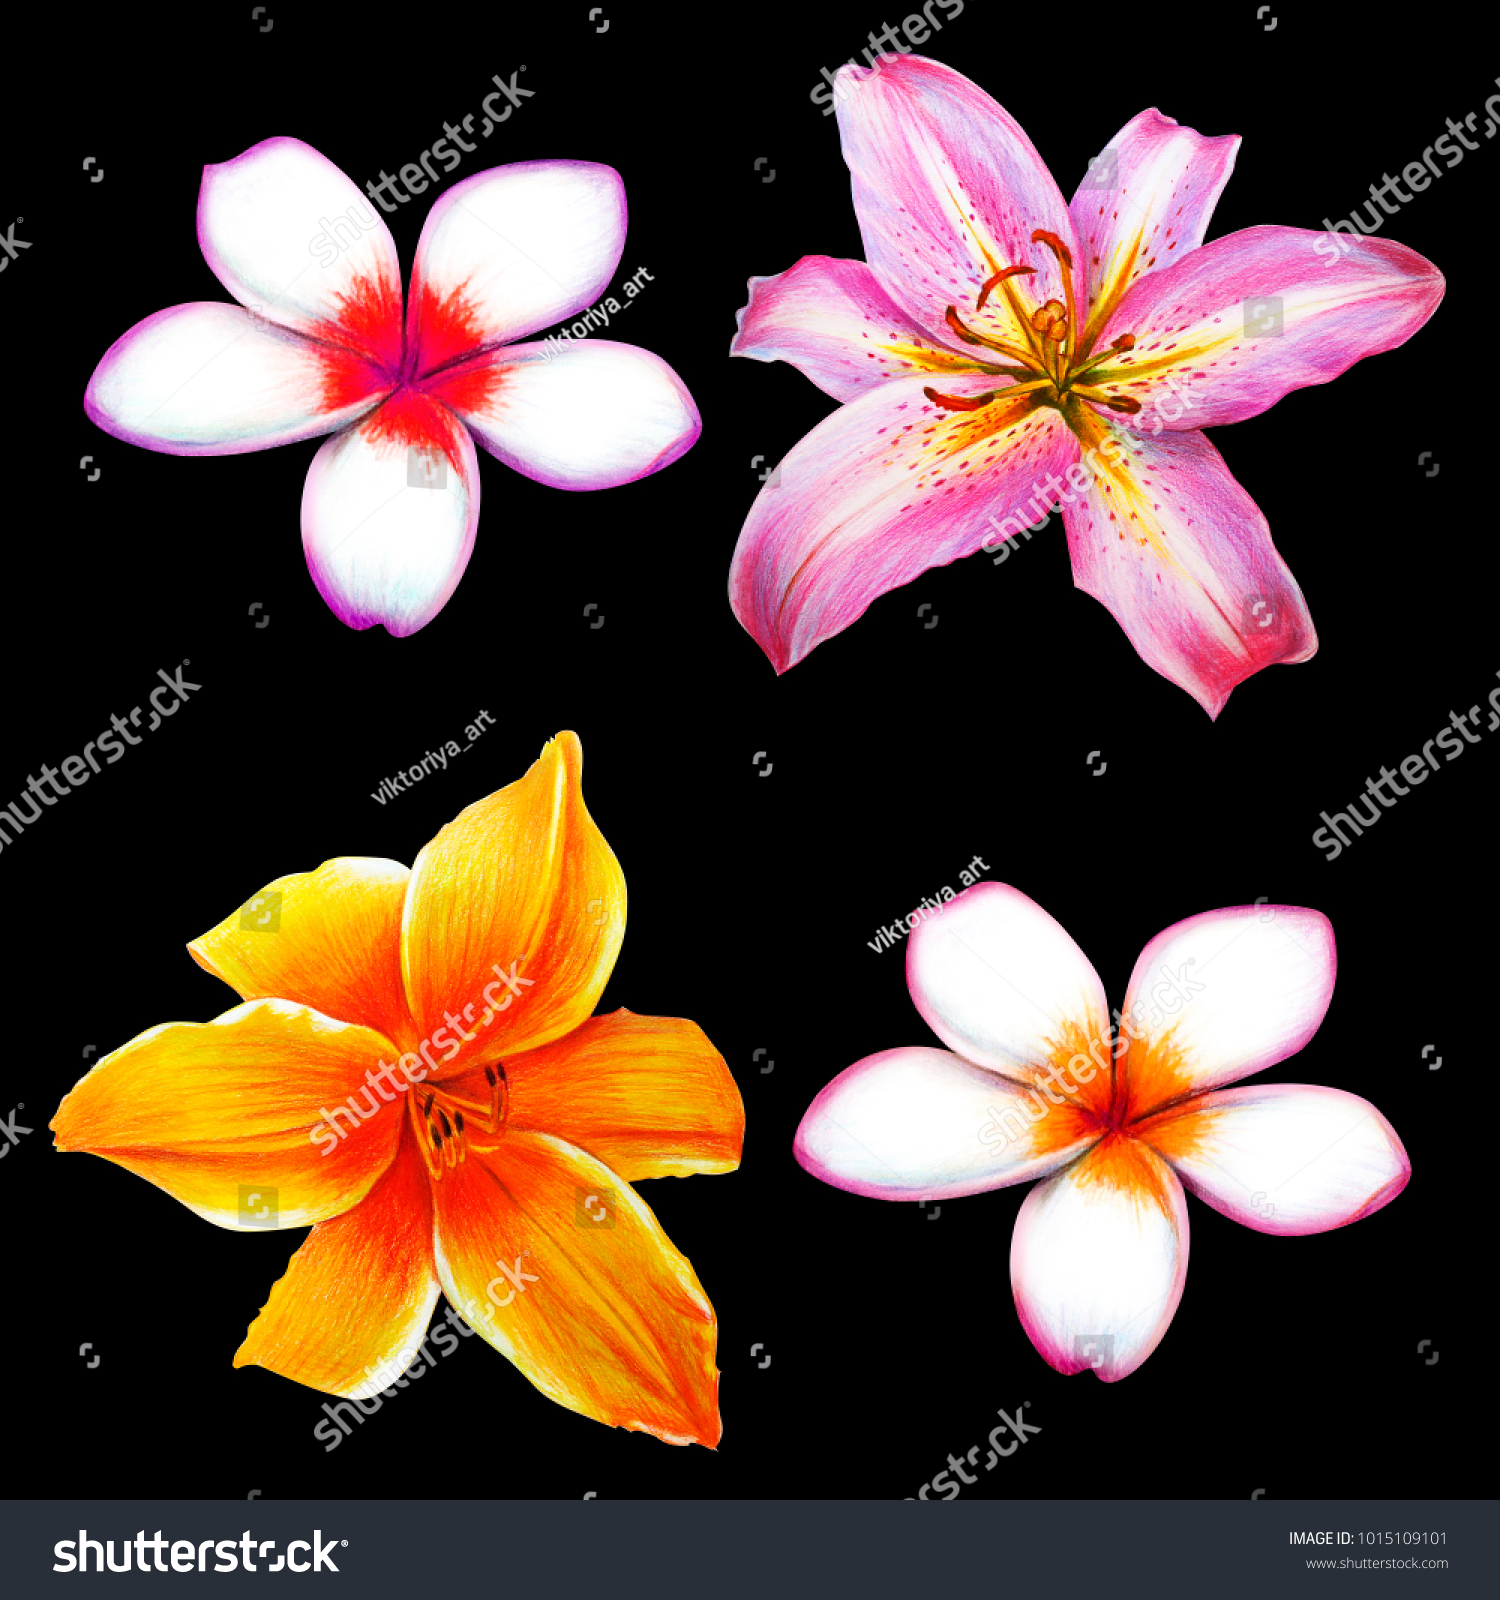 Large tropical lilies small flowers stock illustration 1015109101 large tropical lilies and small flowers izmirmasajfo Images